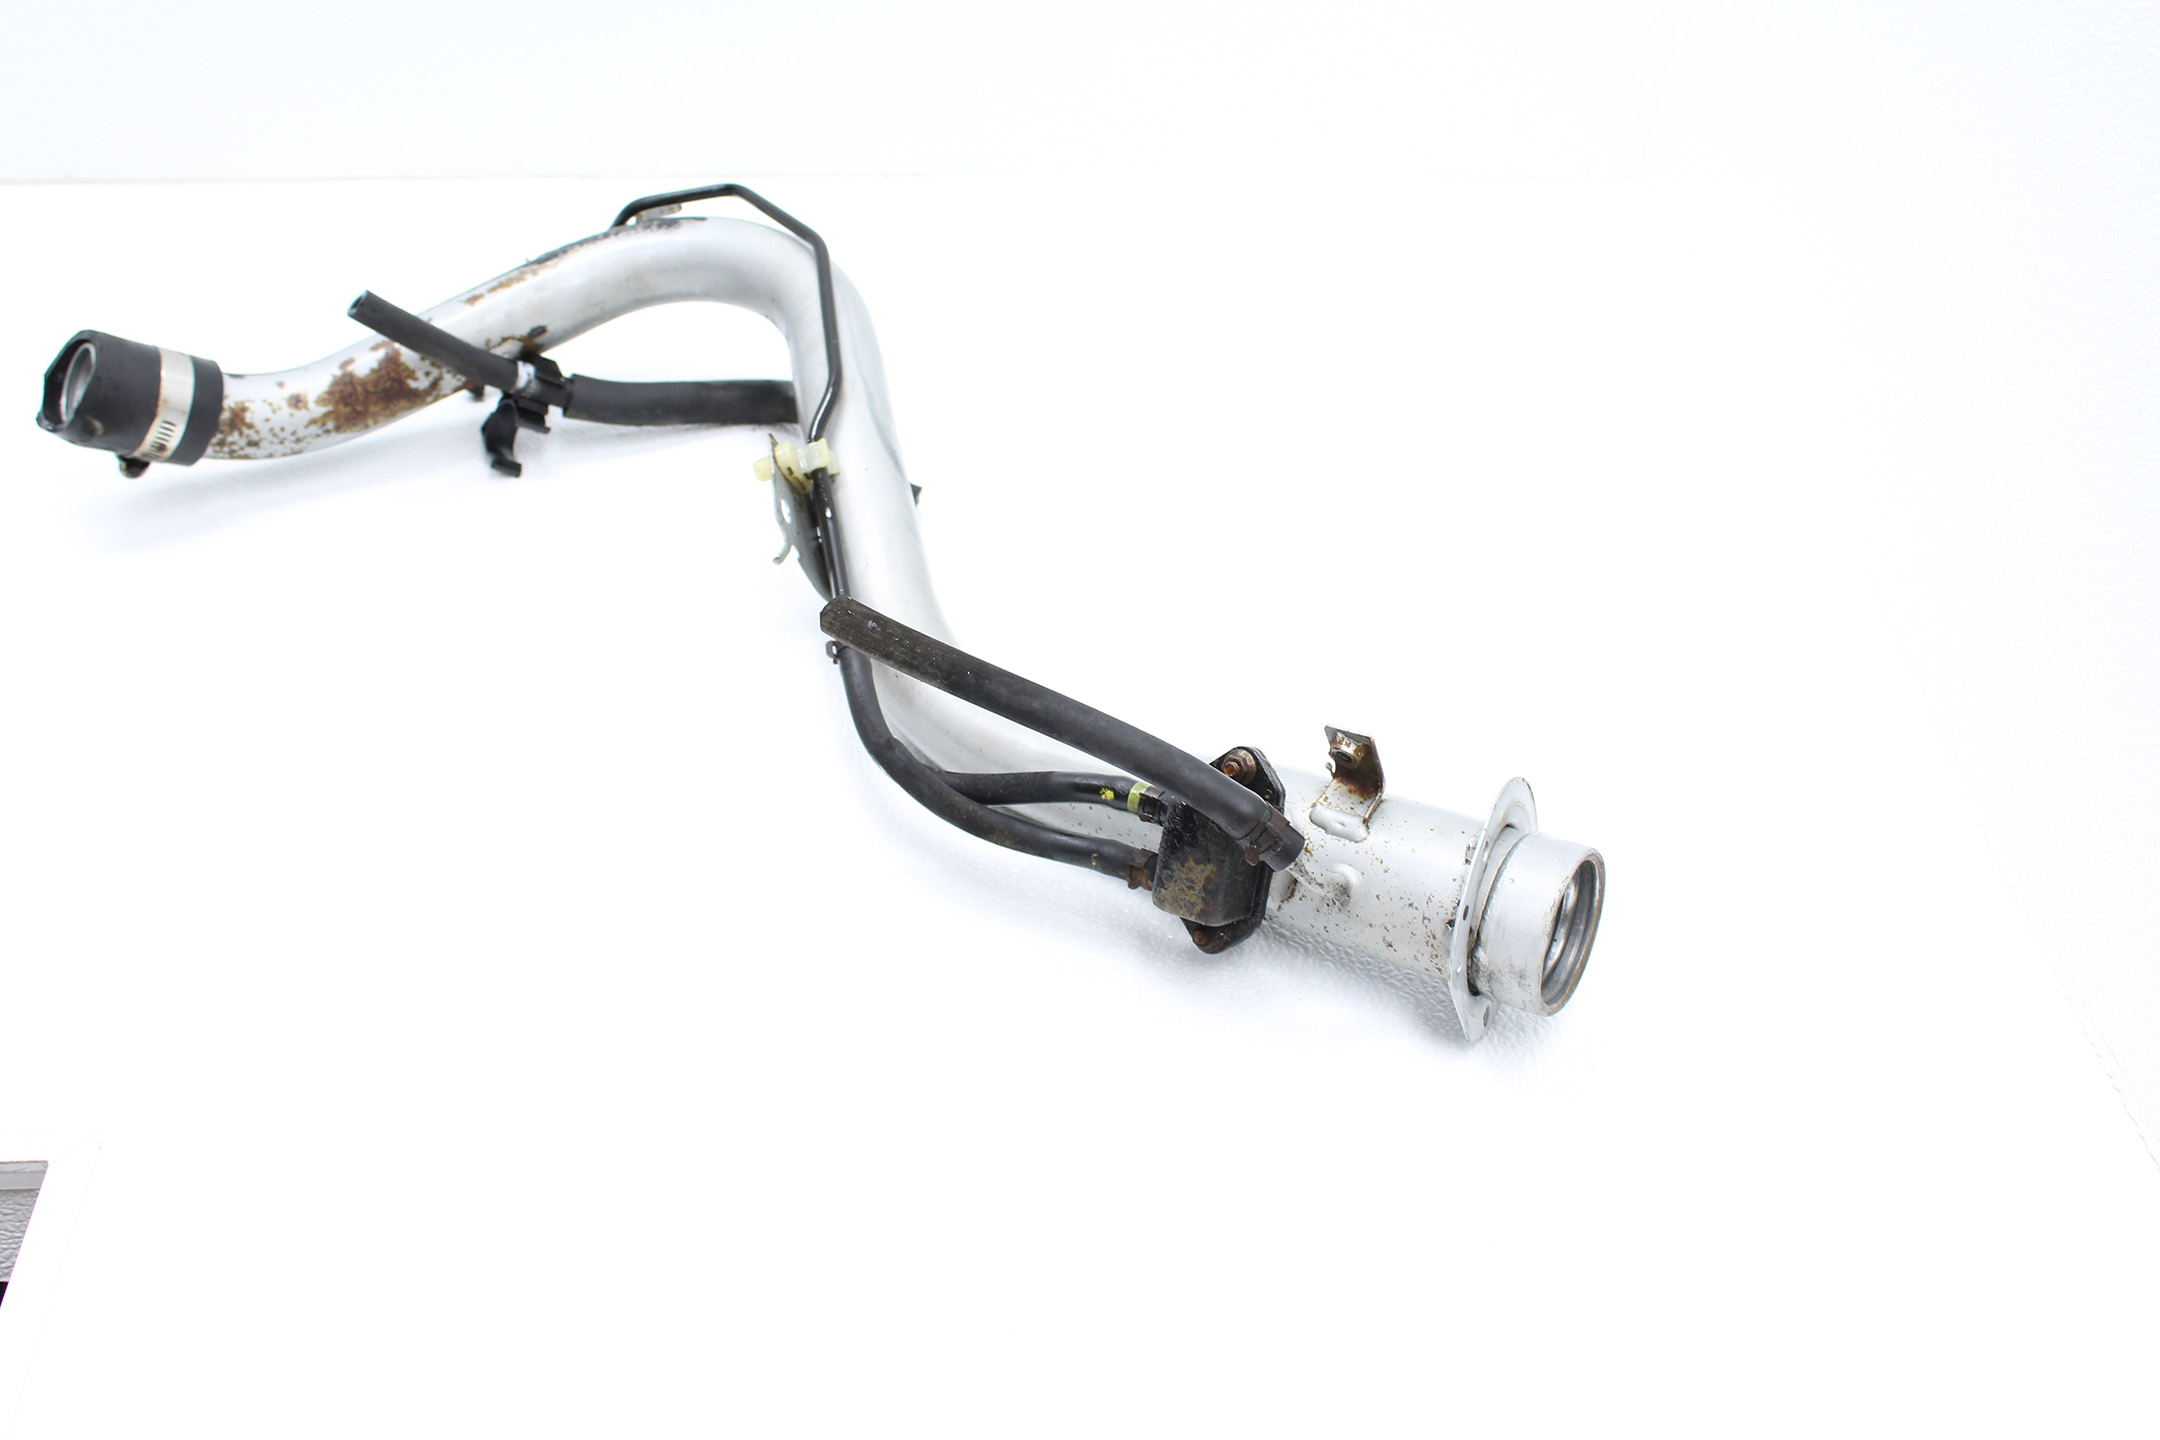 Subaru Impreza 2 5 Rs Gc8 Fuel Filler Neck Tube